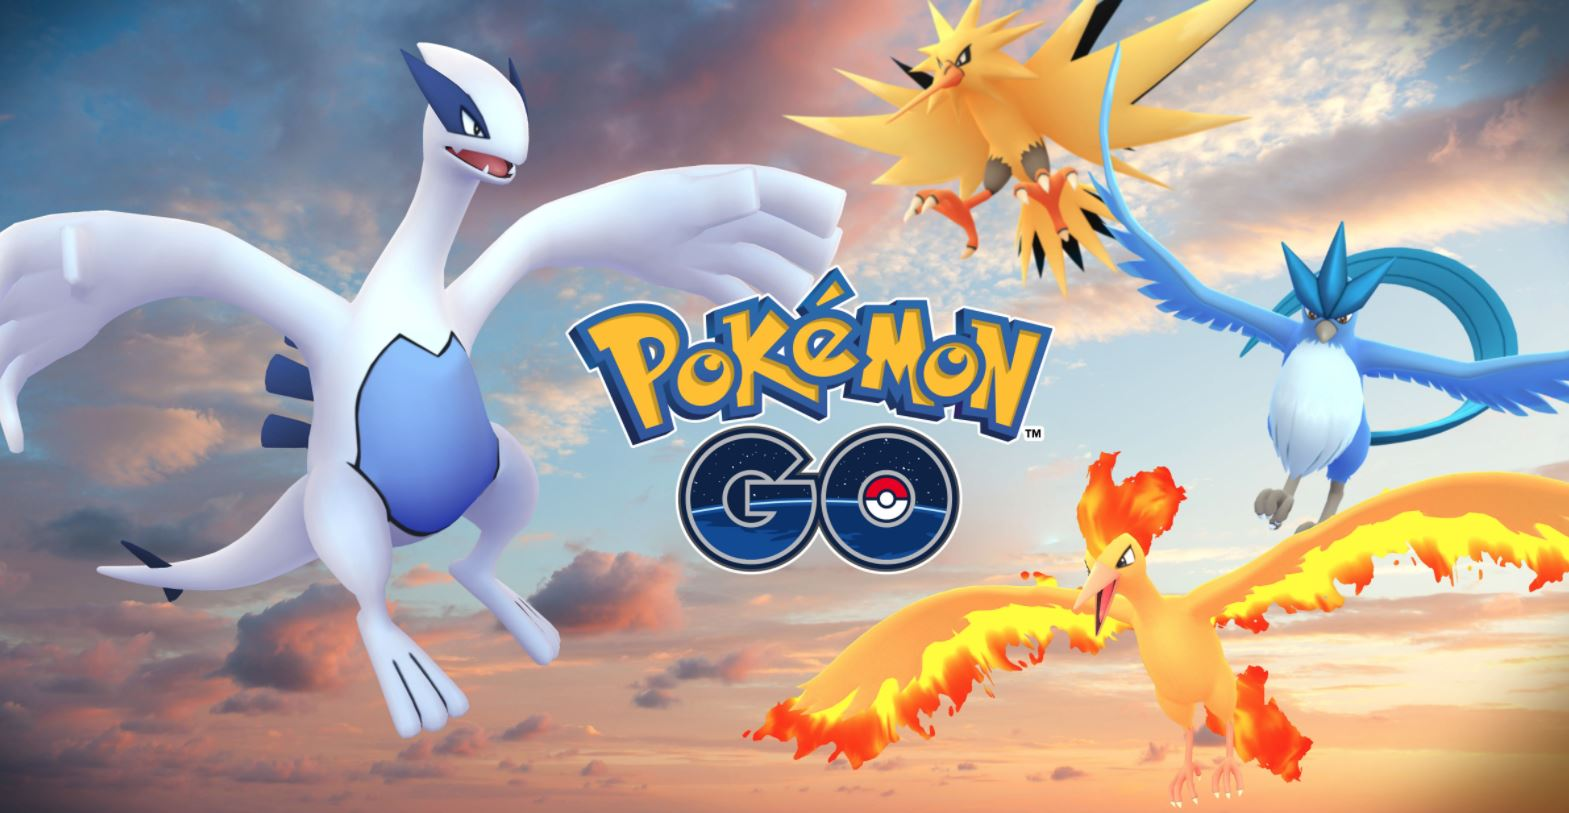 Photo of Pokemon Go is Not Getting New Legendary Pokemon Anytime Soon